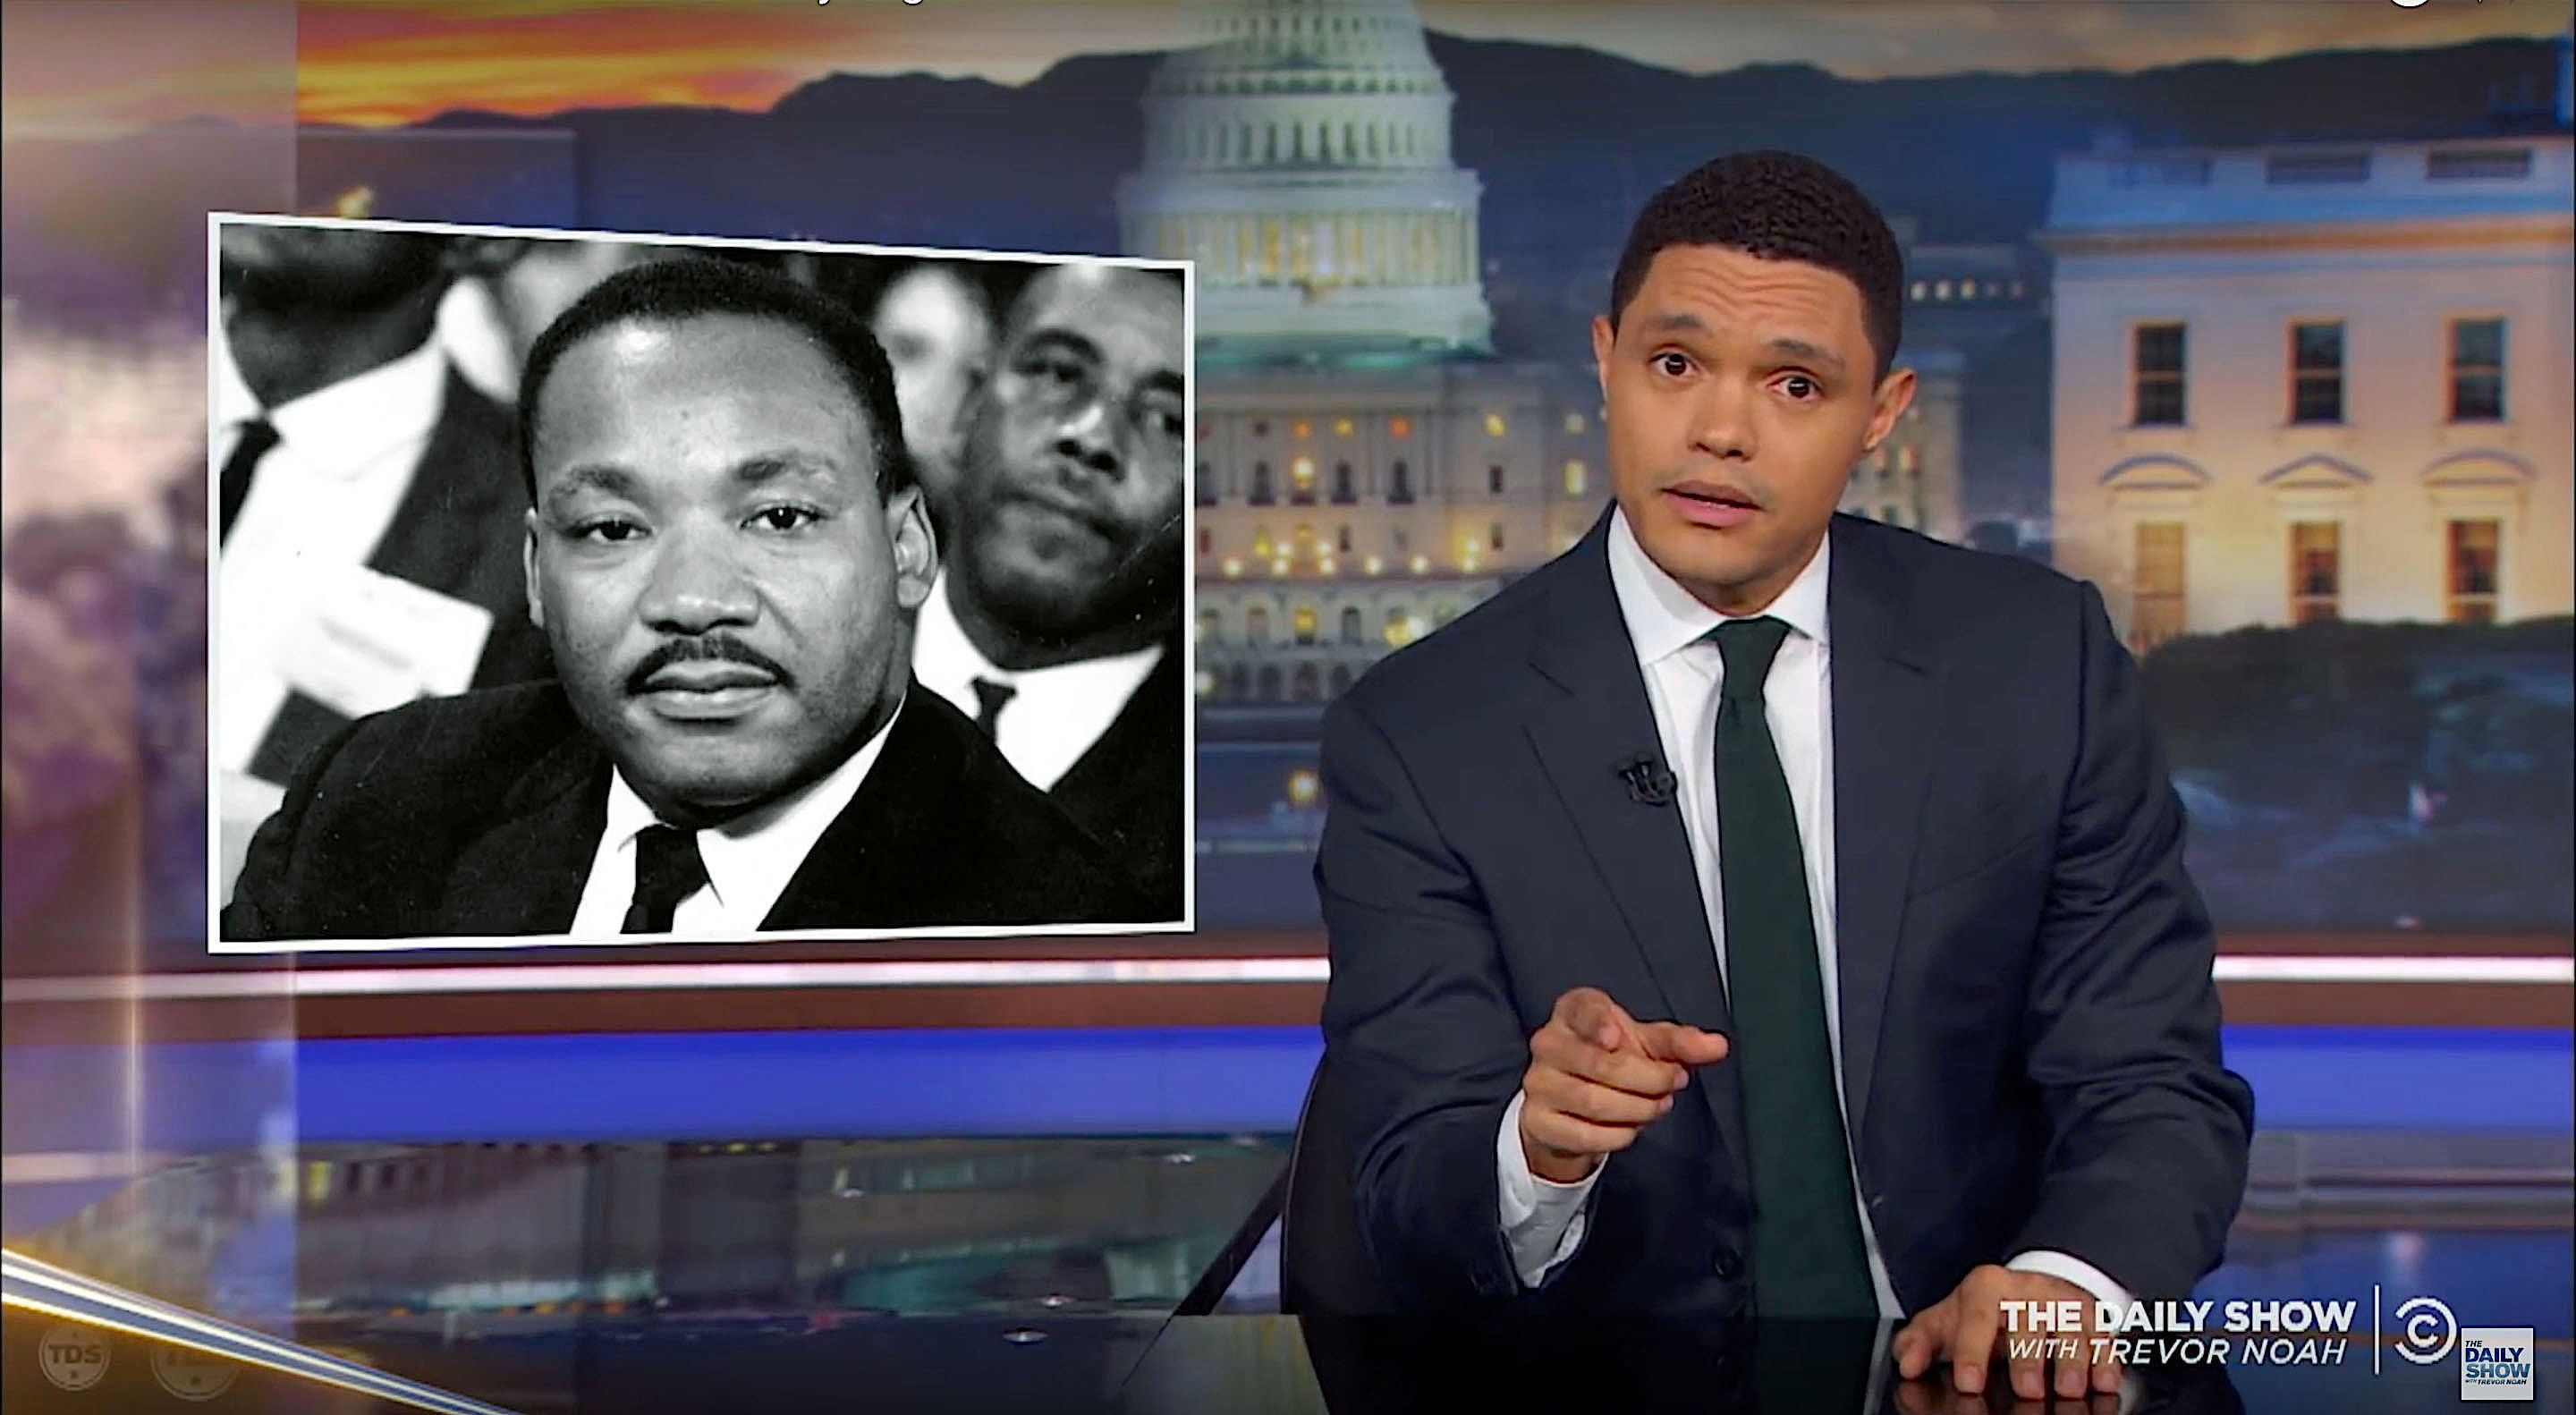 Trevor Noah of The Daily Show talks about civility